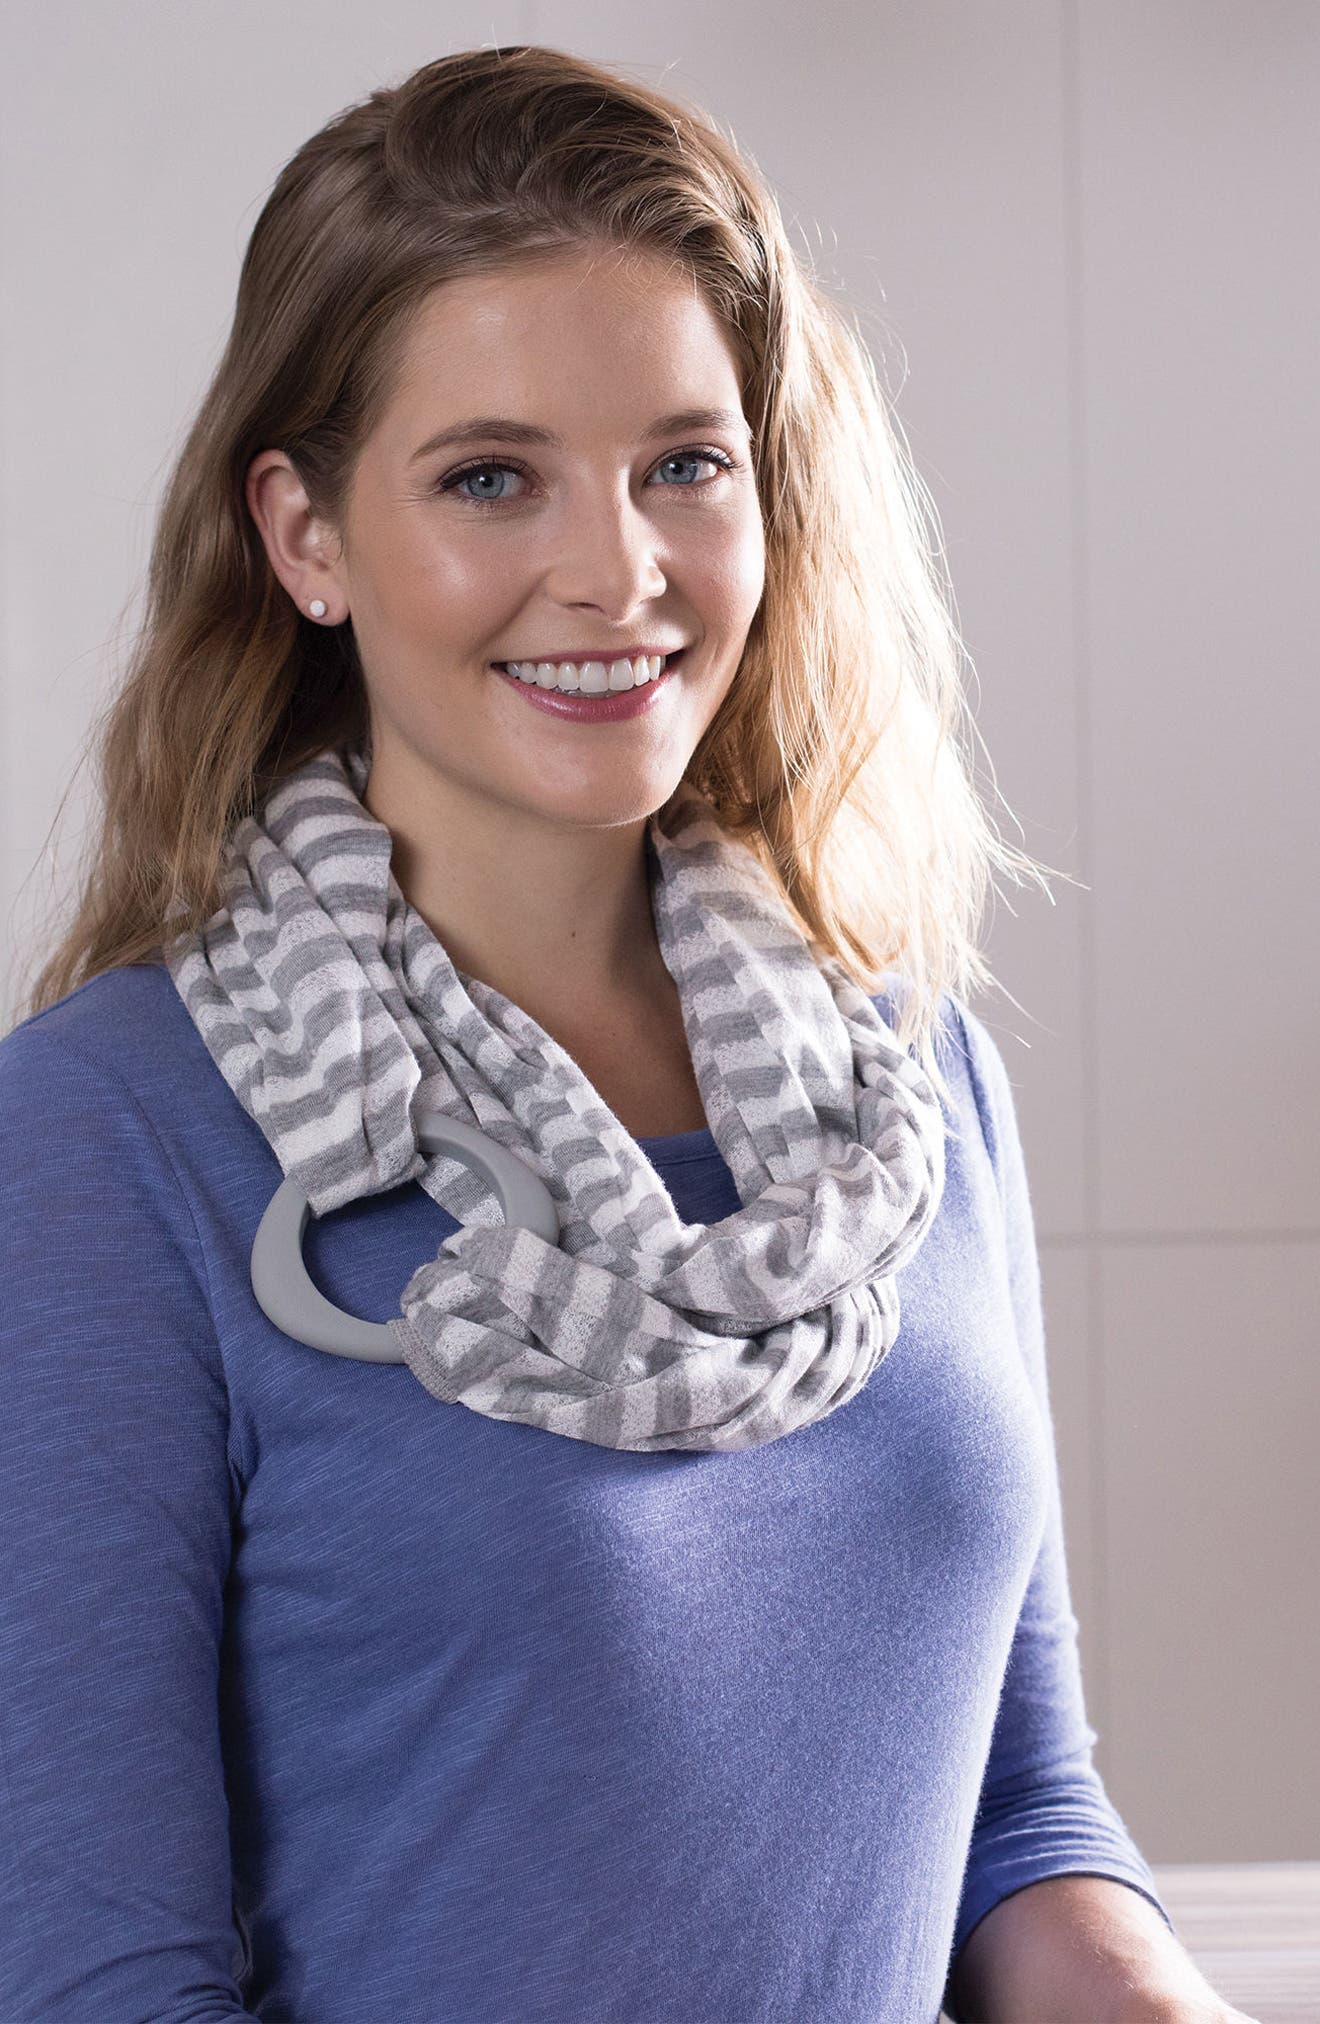 Teething Infinity Scarf,                             Alternate thumbnail 3, color,                             Gray And White Stripes